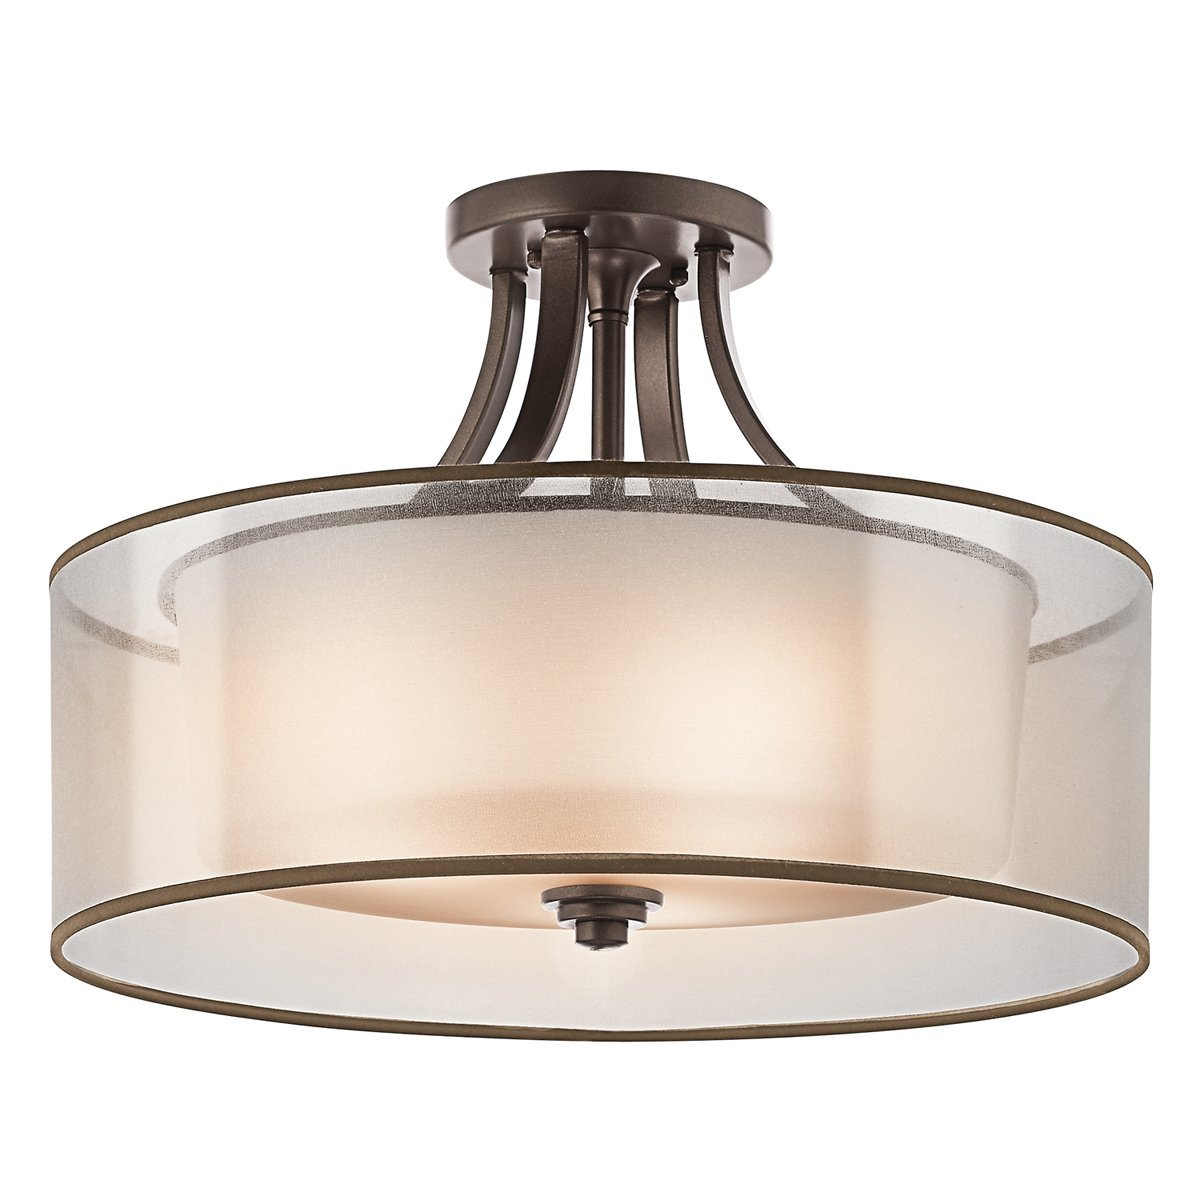 Kichler 42387miz four light semi flush mount close to ceiling kichler 42387miz four light semi flush mount close to ceiling light fixtures amazon aloadofball